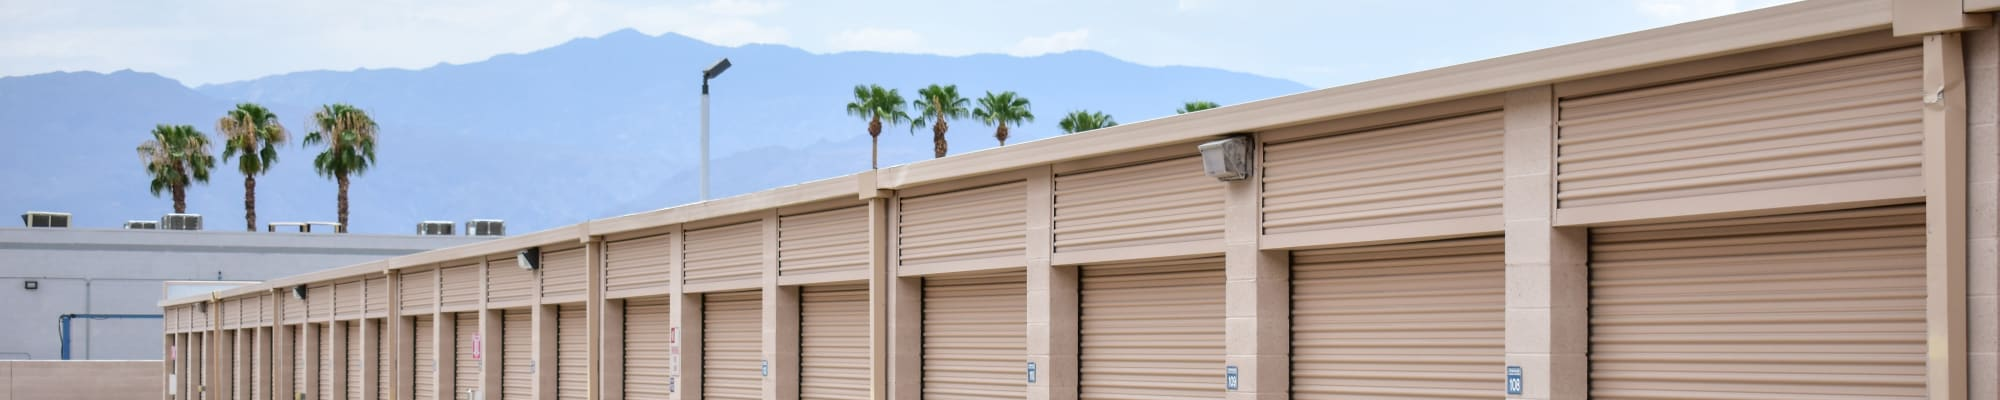 Climate-controlled storage at STOR-N-LOCK Self Storage in Palm Desert, California